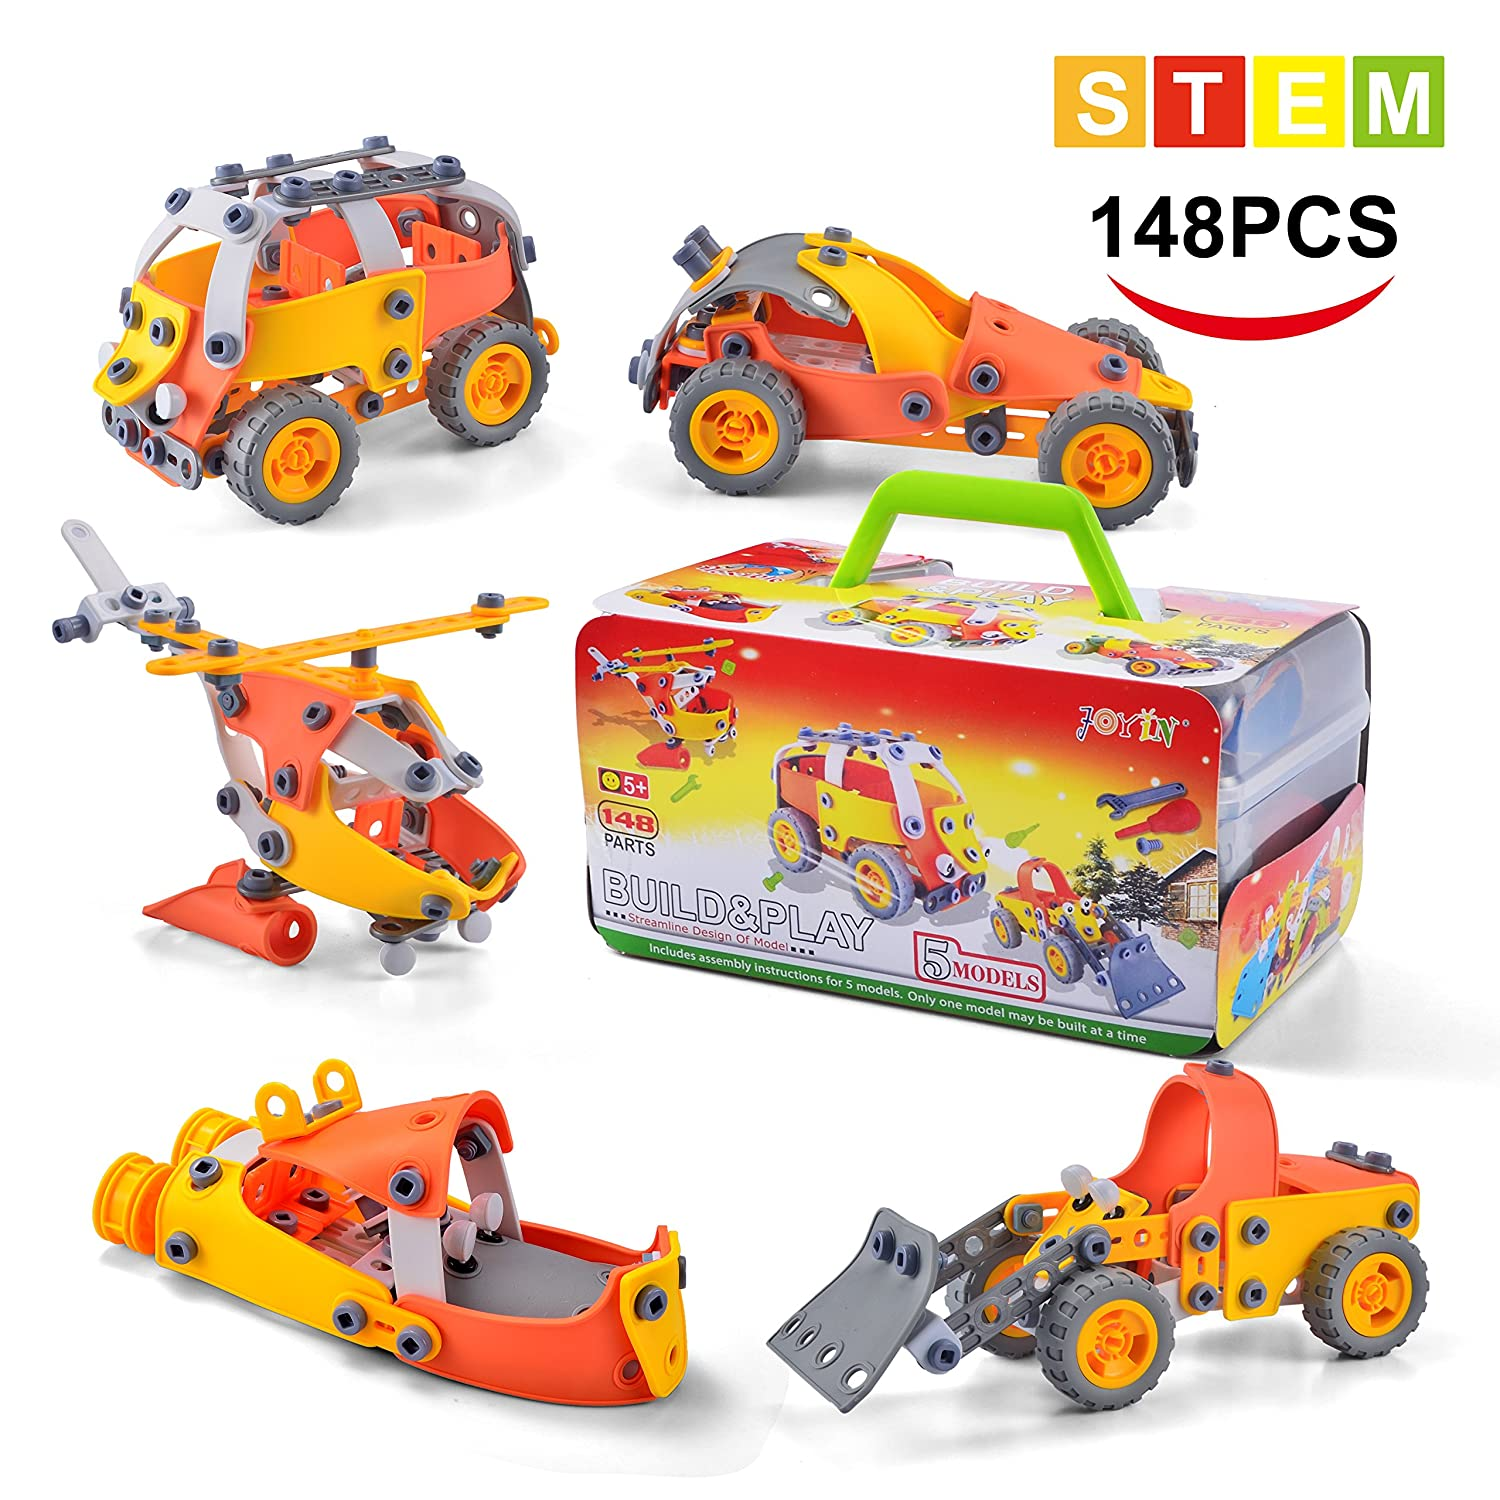 148 Pieces Take-a-Part Play-set, Educational Construction Engineering Toy Set Up-to 5 models by Joyin Toy Review